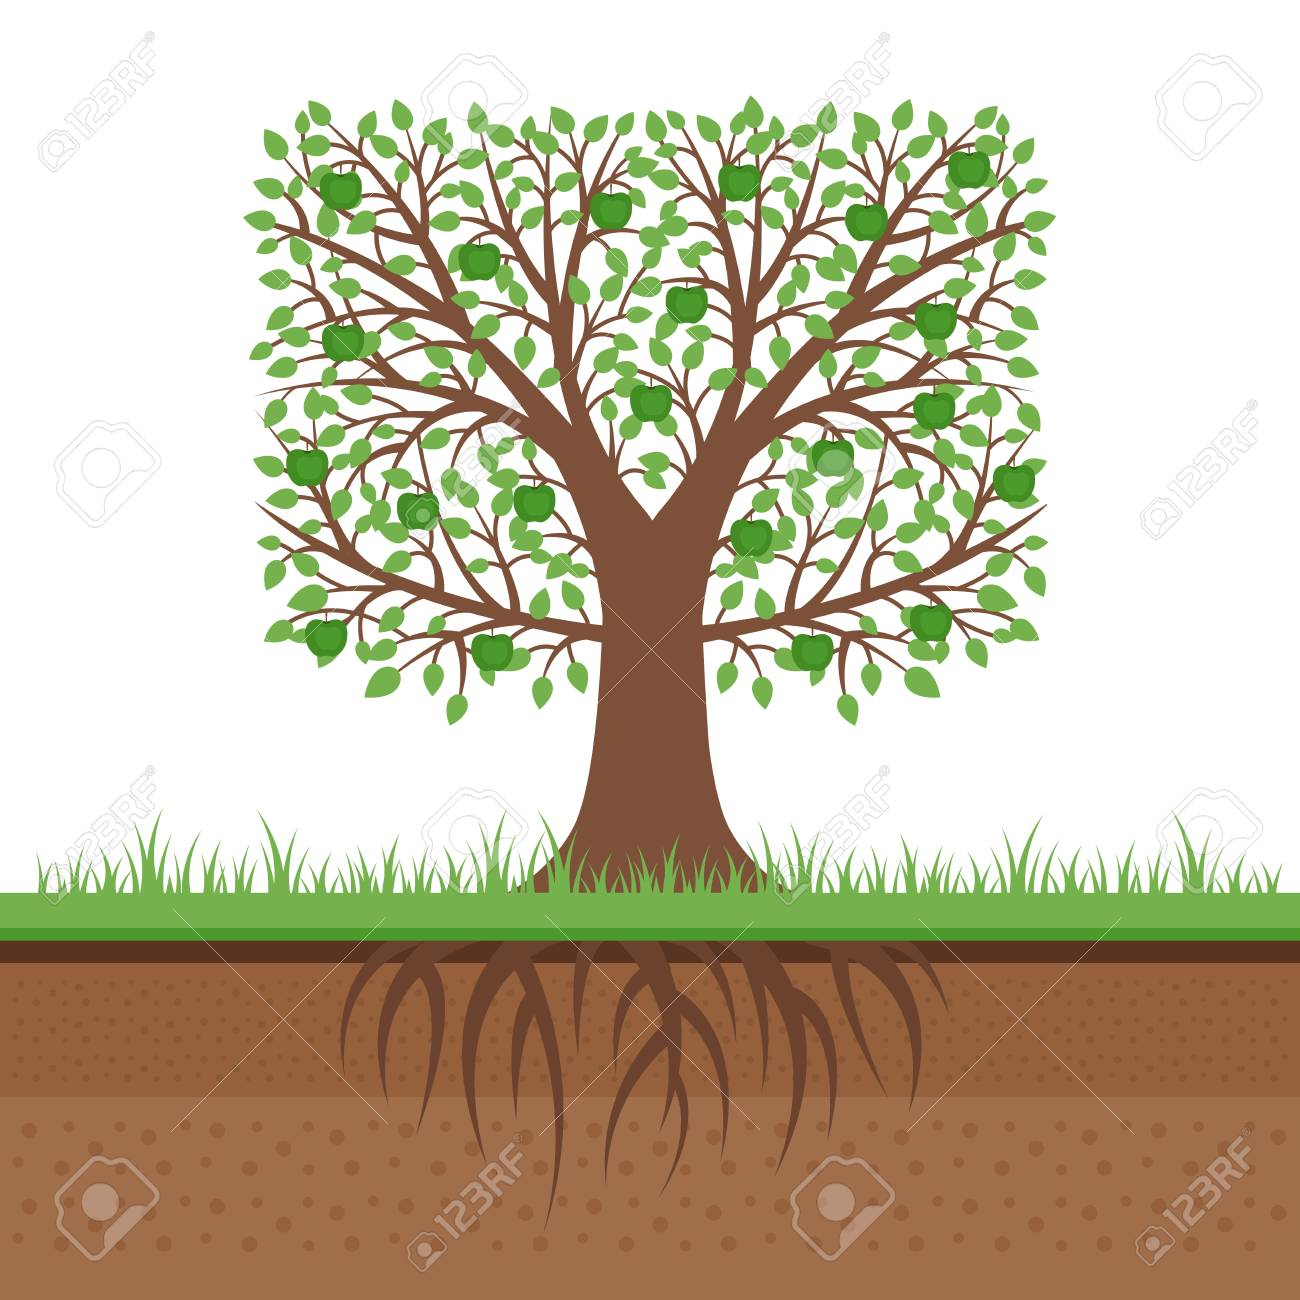 clip art royalty free Free download clip art. Roots clipart landscaping.